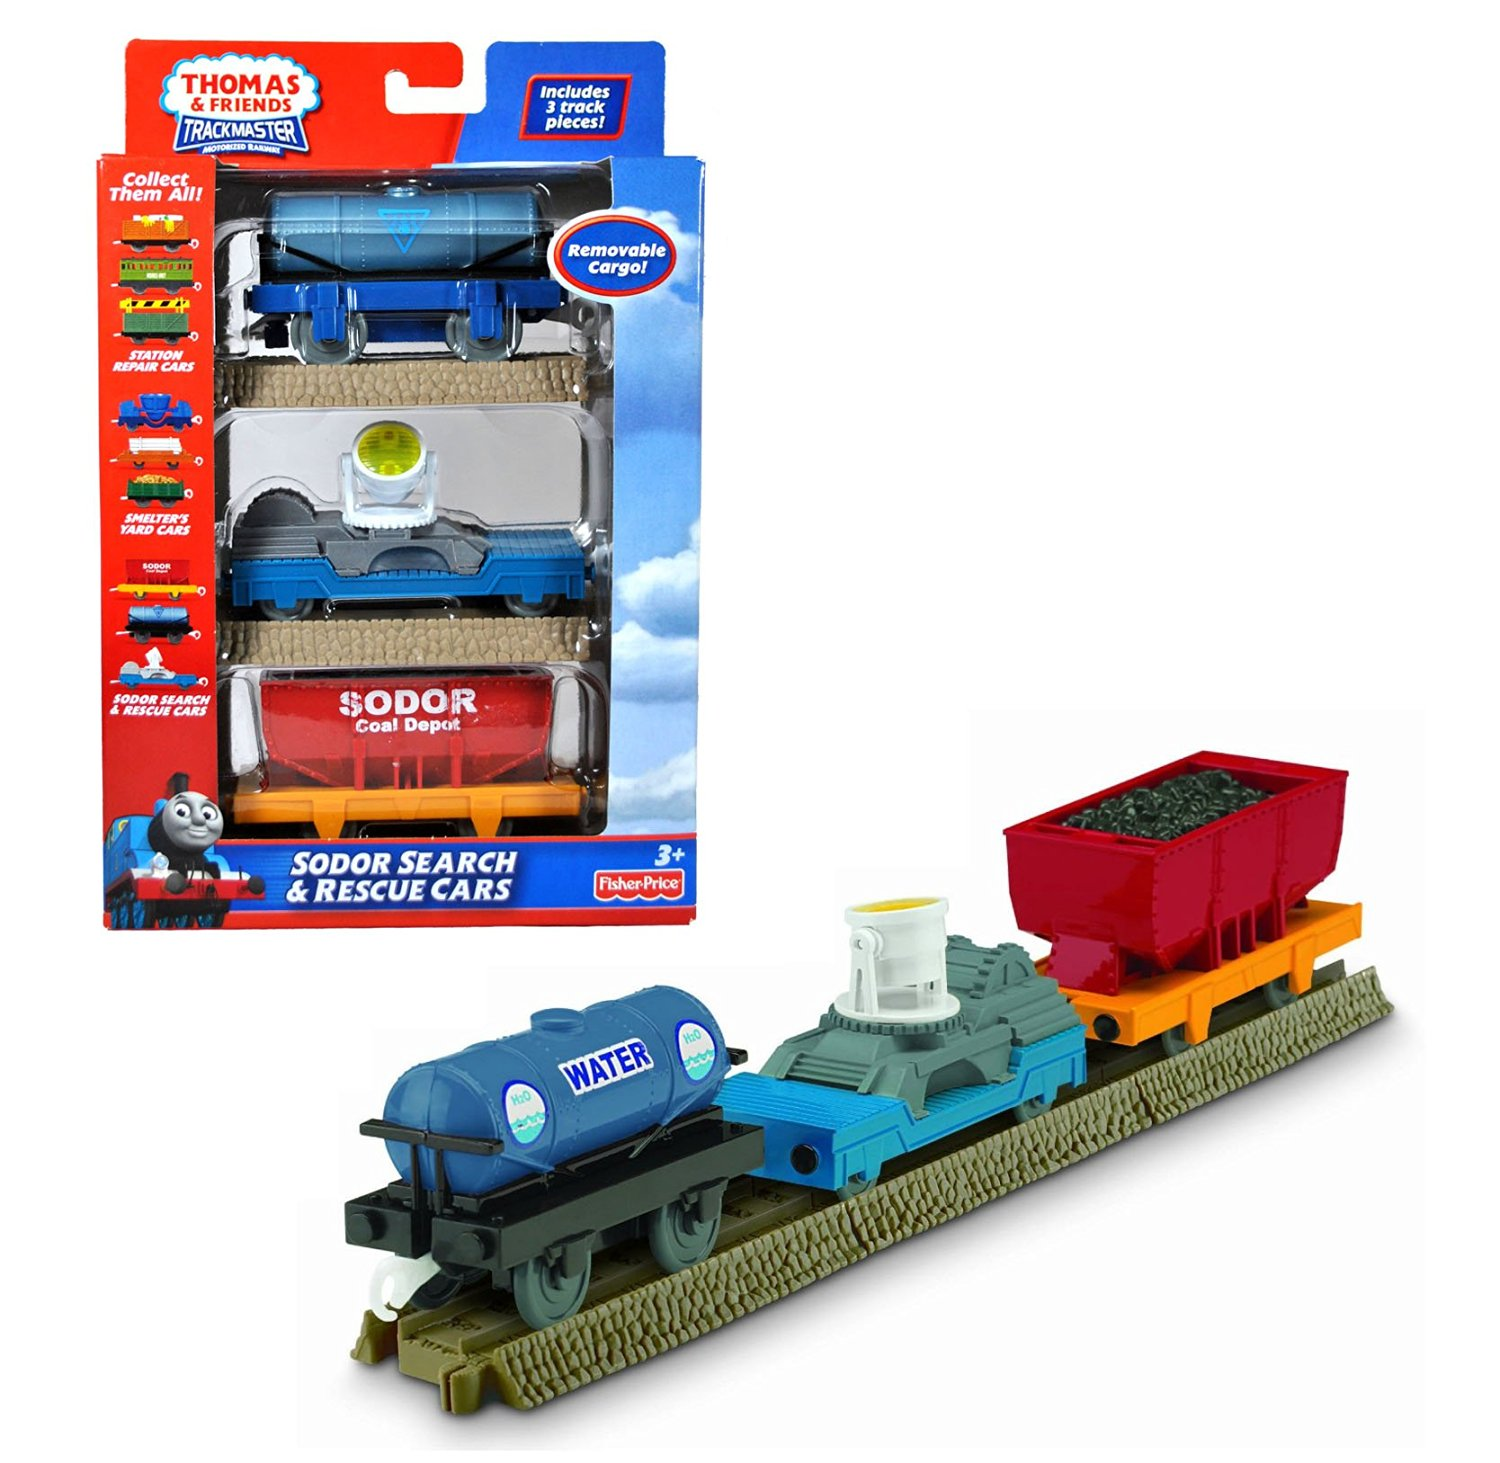 "Fisher Price Year 2010 Thomas and Friends Trackmaster Motorized Railway 3 Pack Train Car Set - ""SODOR SEARCH & RESCUE CARS"" with Water Tanker, Flat Bed Trailer with Search Light and Coal Wagon Plus 3 Straight Tracks (T4648)"